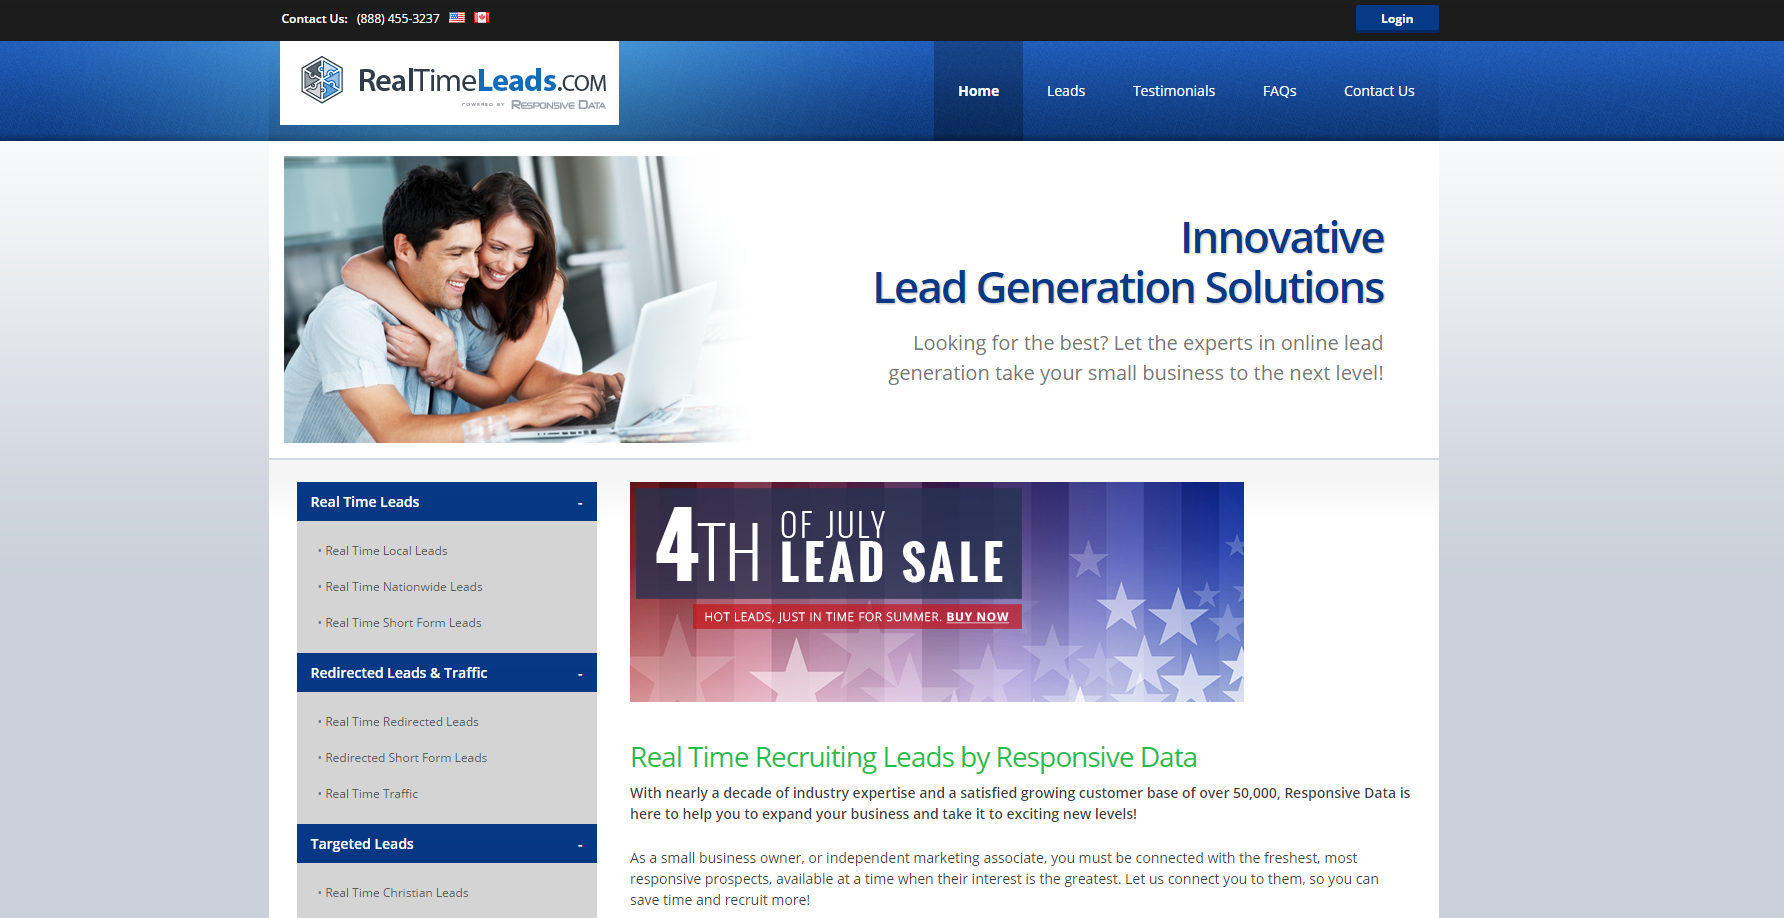 RealTimeLeads Ads